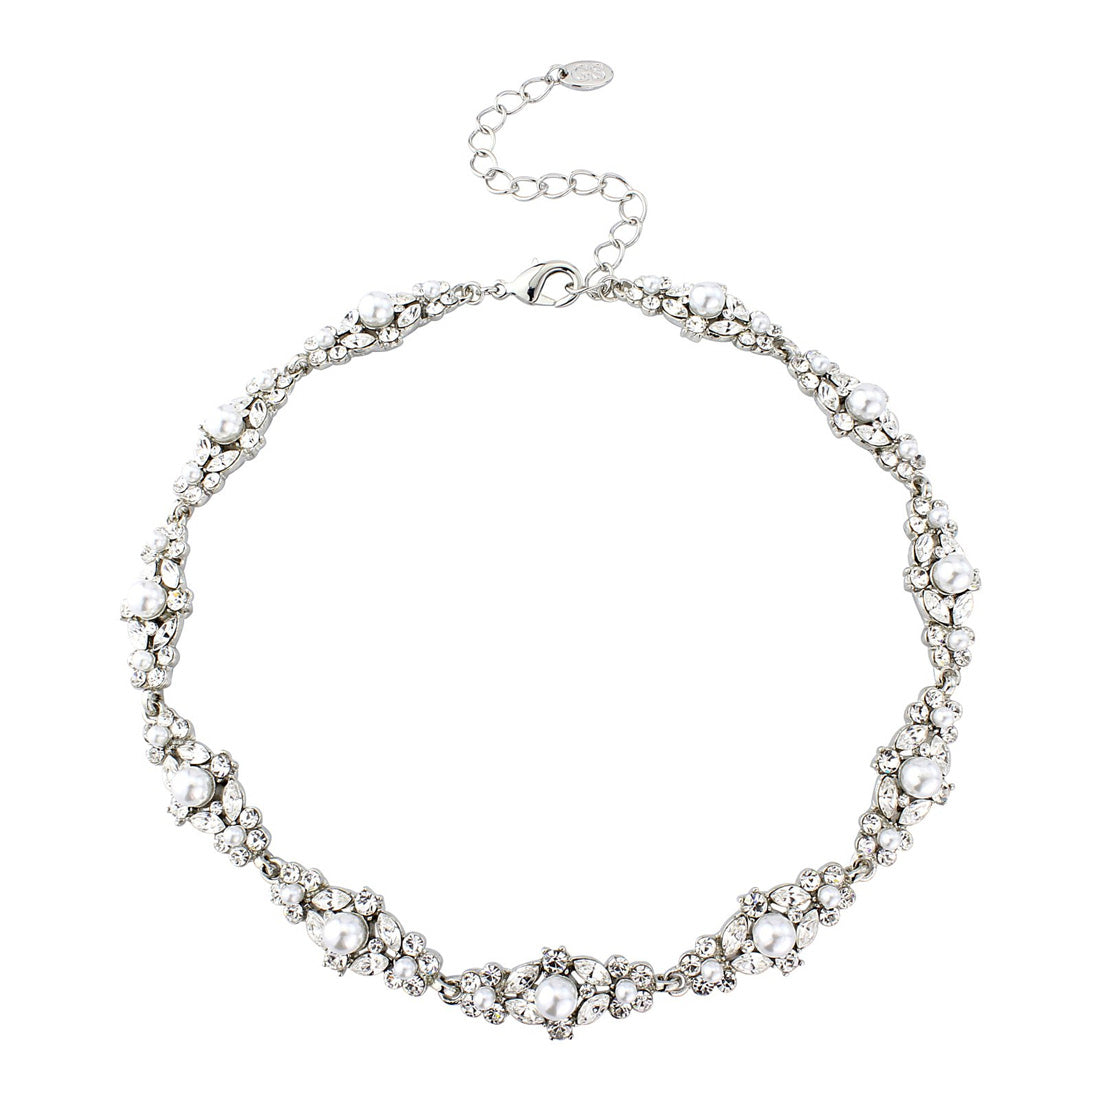 Wedding Ring Necklace 50 Best Pearls of Splendour Necklace